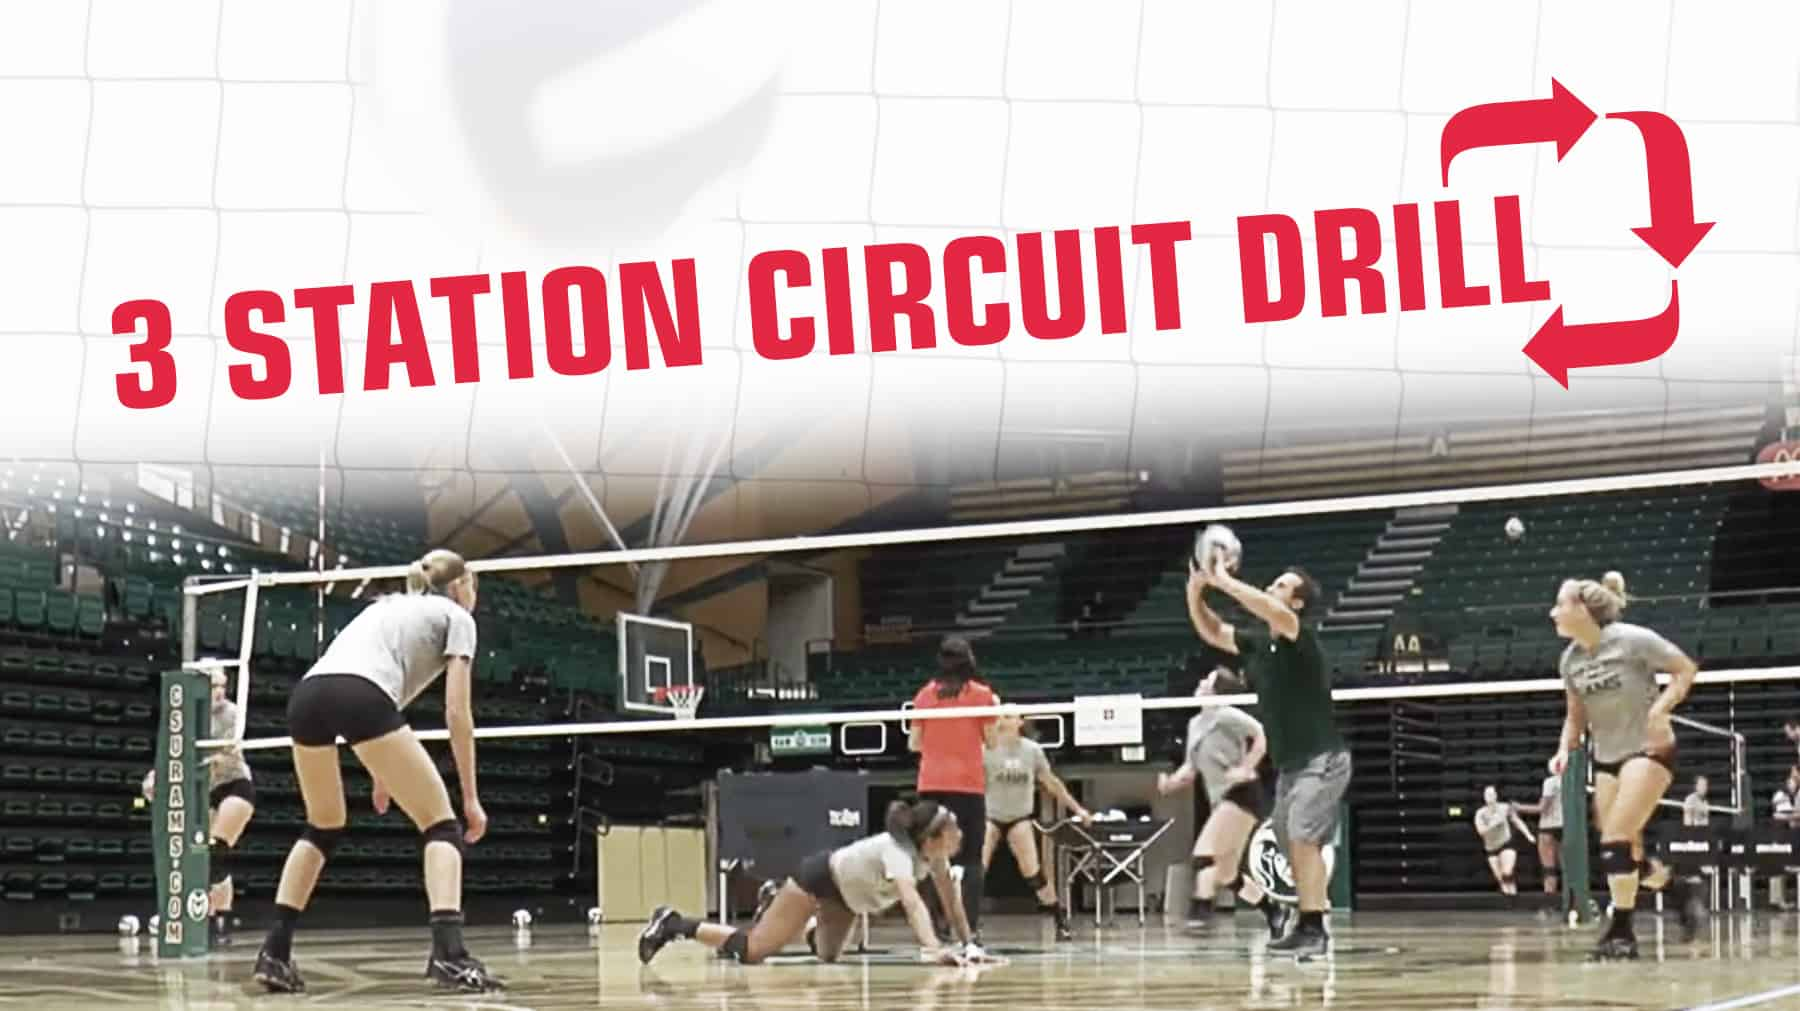 3 Station Circuit Drill Improves Defensive Play